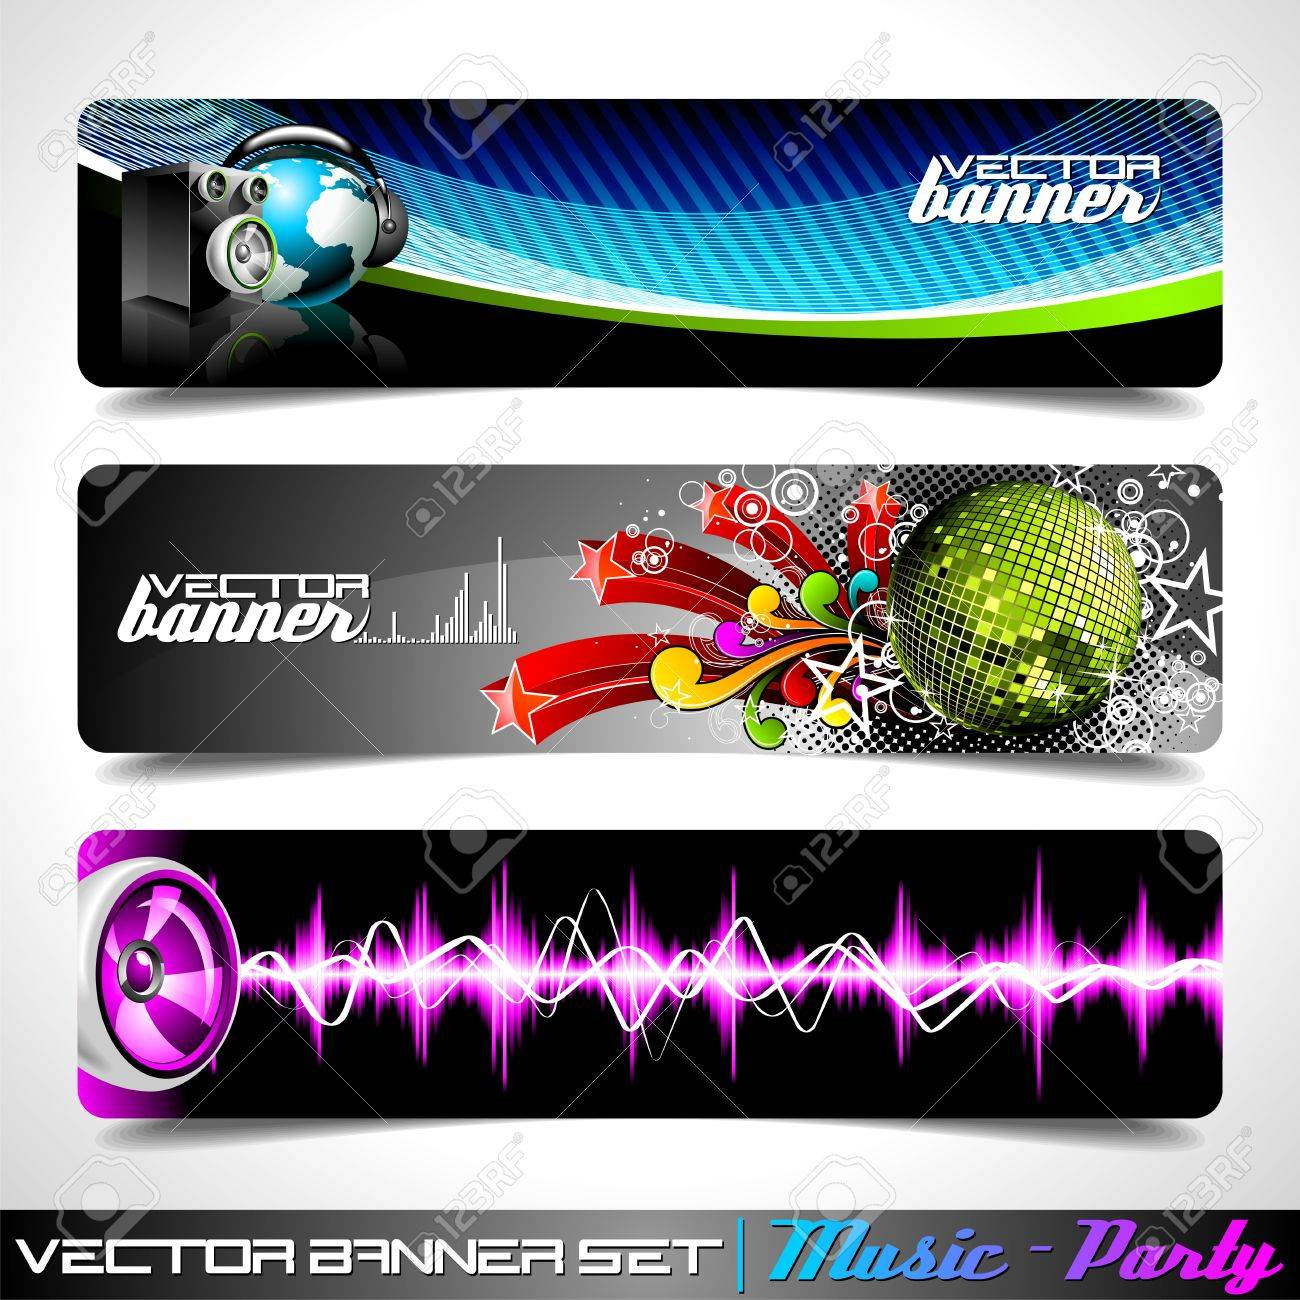 Vector banner set on a Music and Party theme. Stock Vector - 10263757